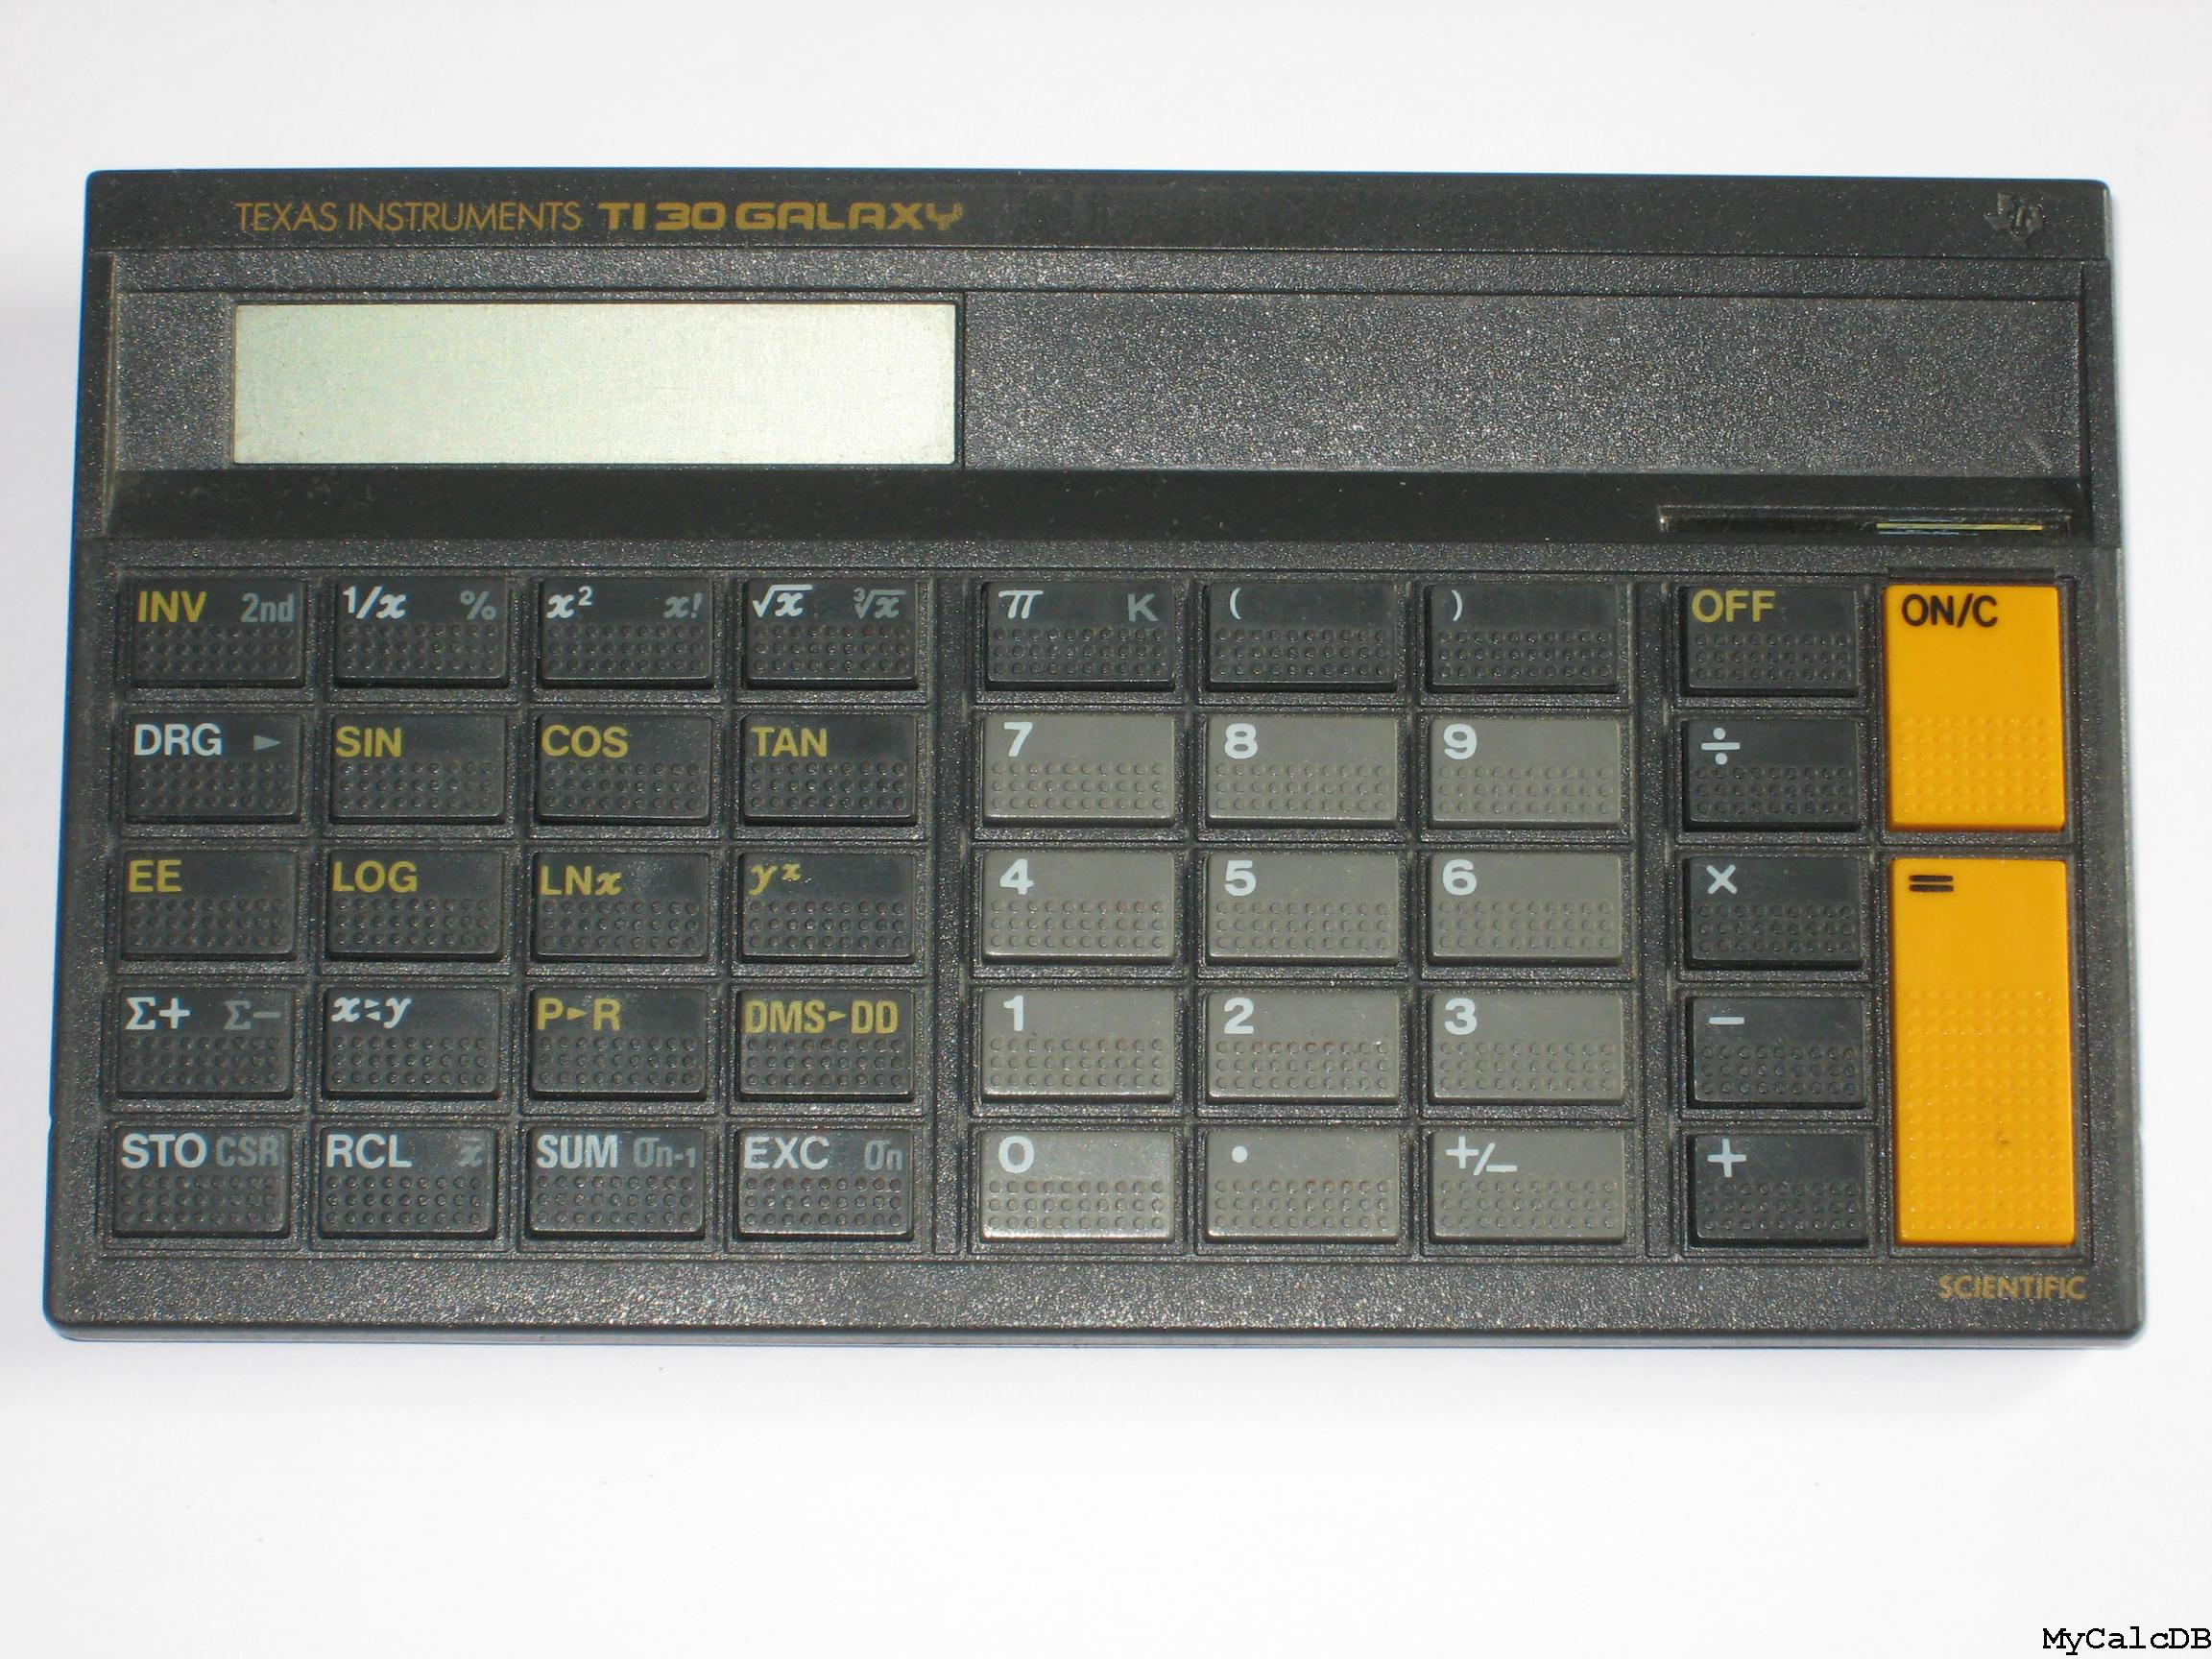 Texas Instruments TI 30 GALAXY